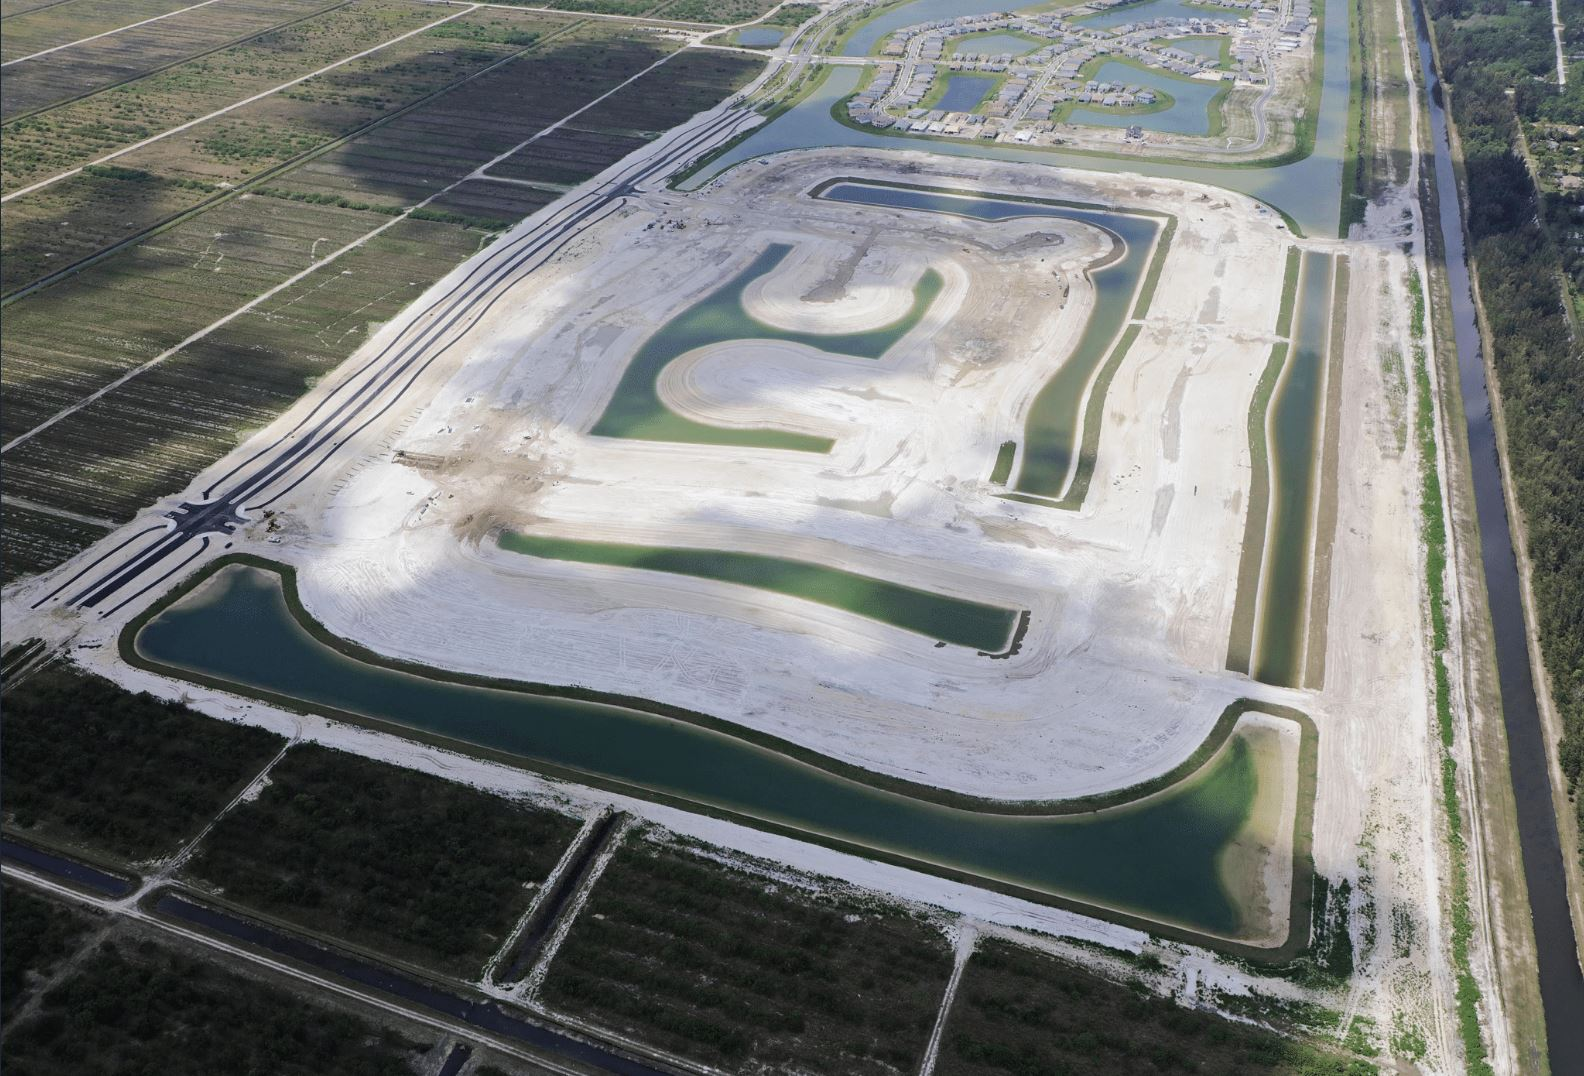 Ariel view of the Meadows development site in Westlake